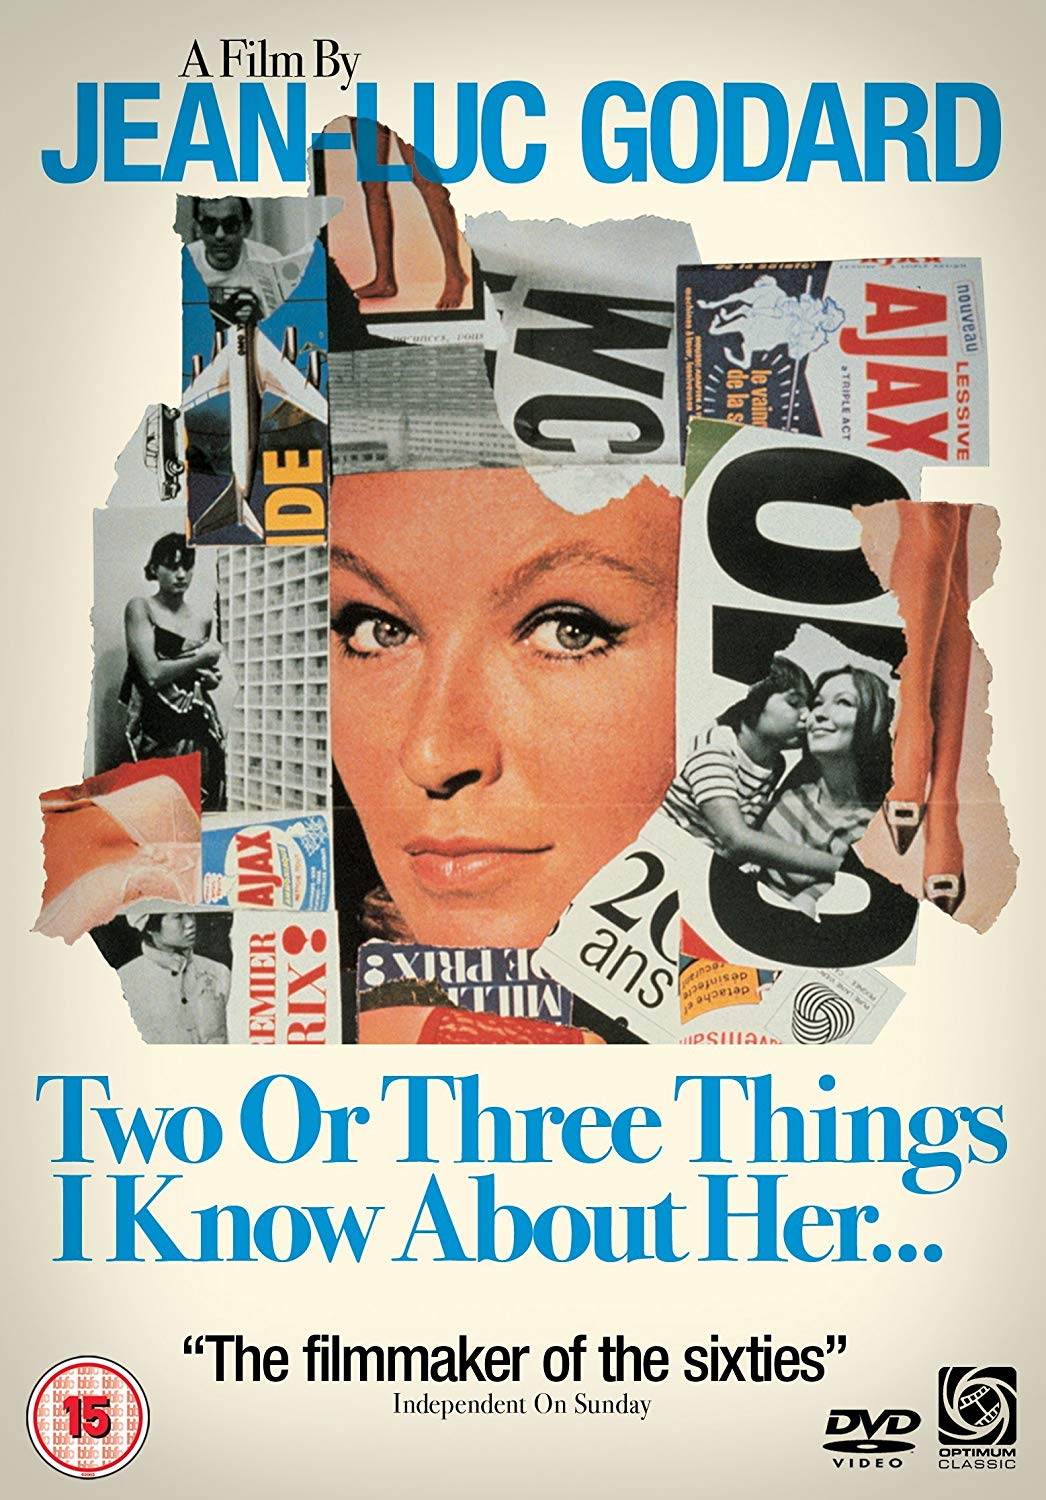 Buy Two Or Three Things I Know About Her...